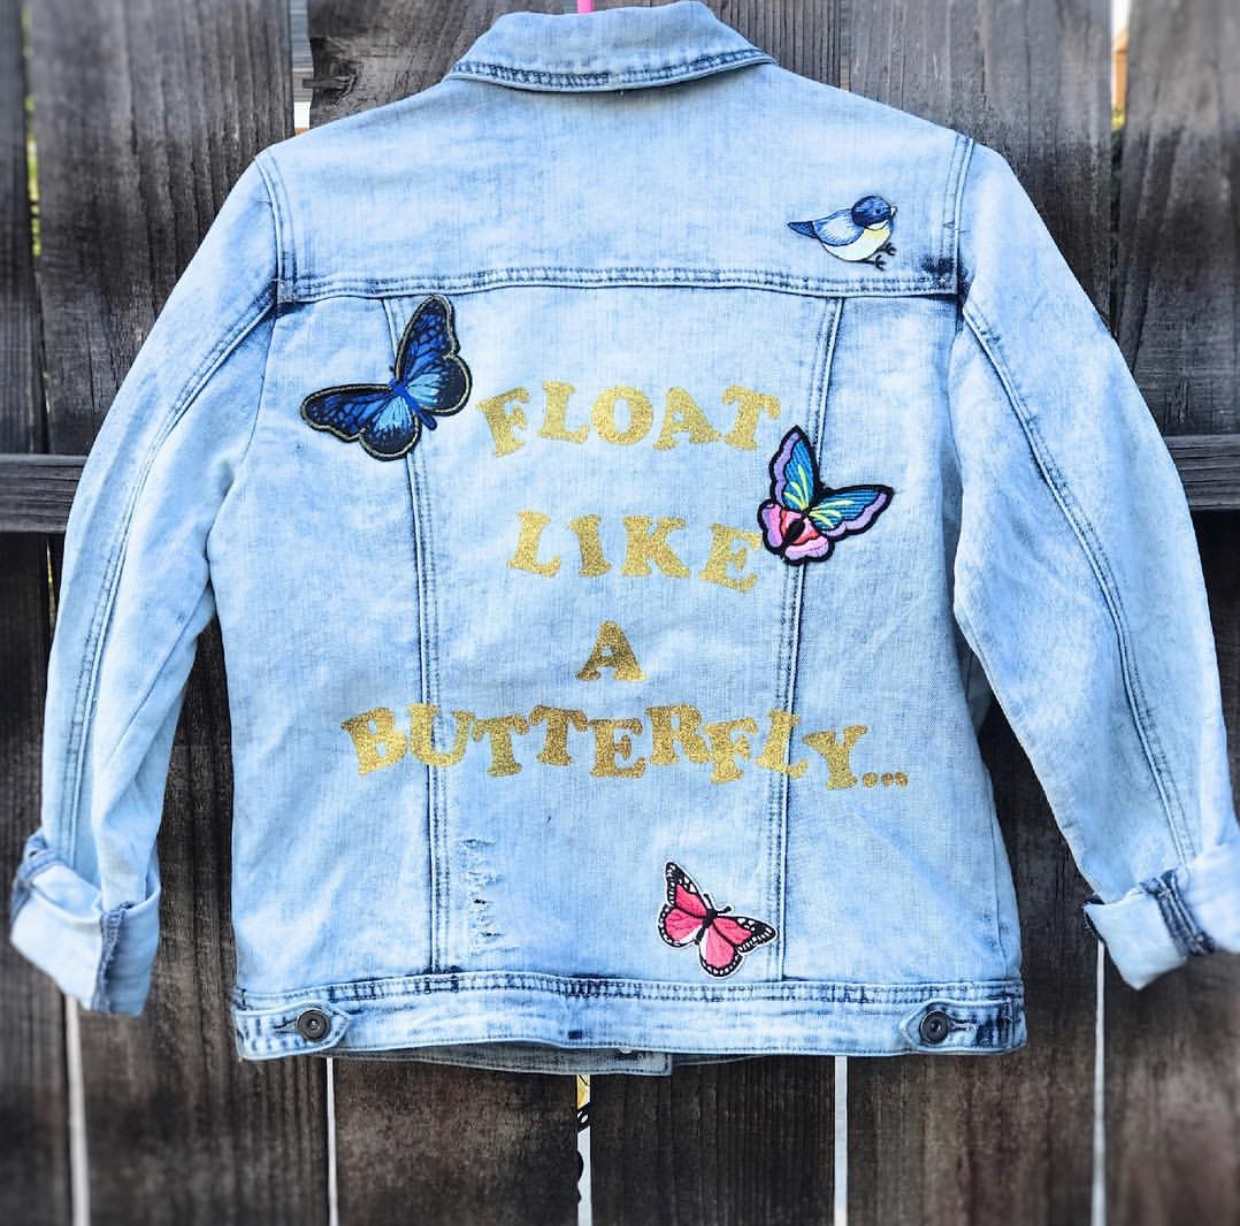 A combination of butterflies and Muhammad Ali's well known phrase was the inspiration for this piece. -